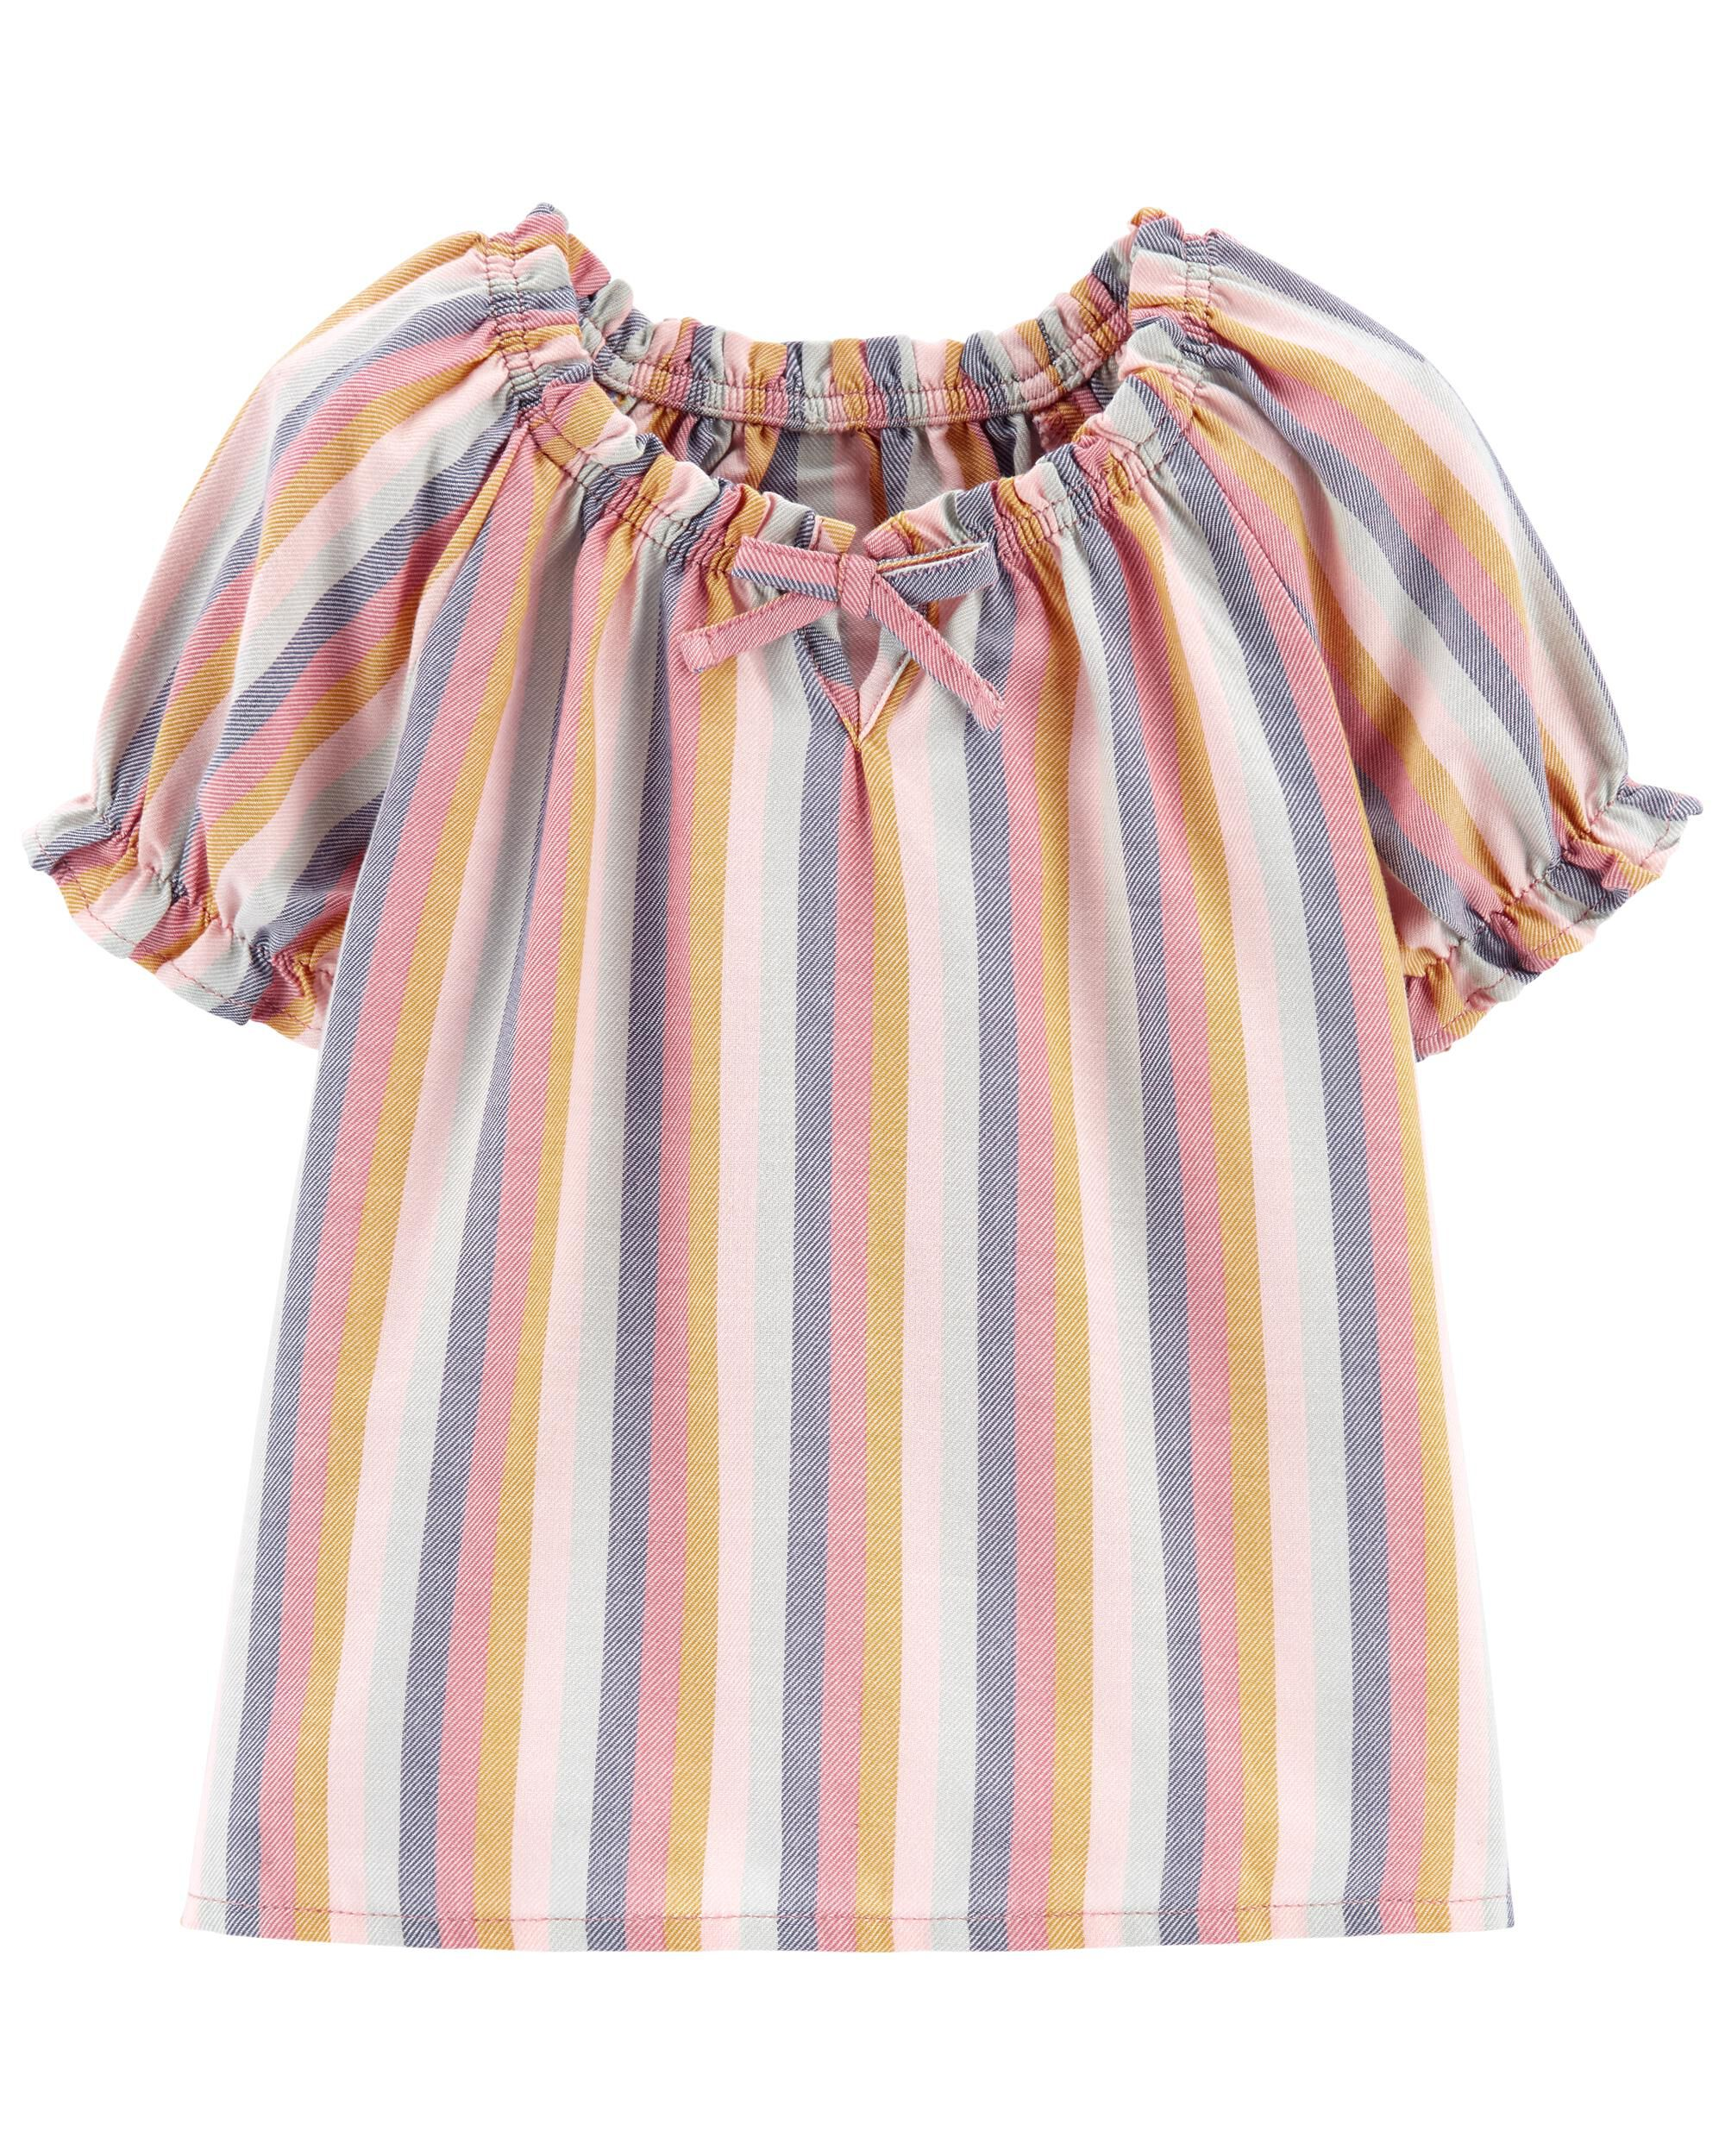 Carters Striped Puff Sleeve Top